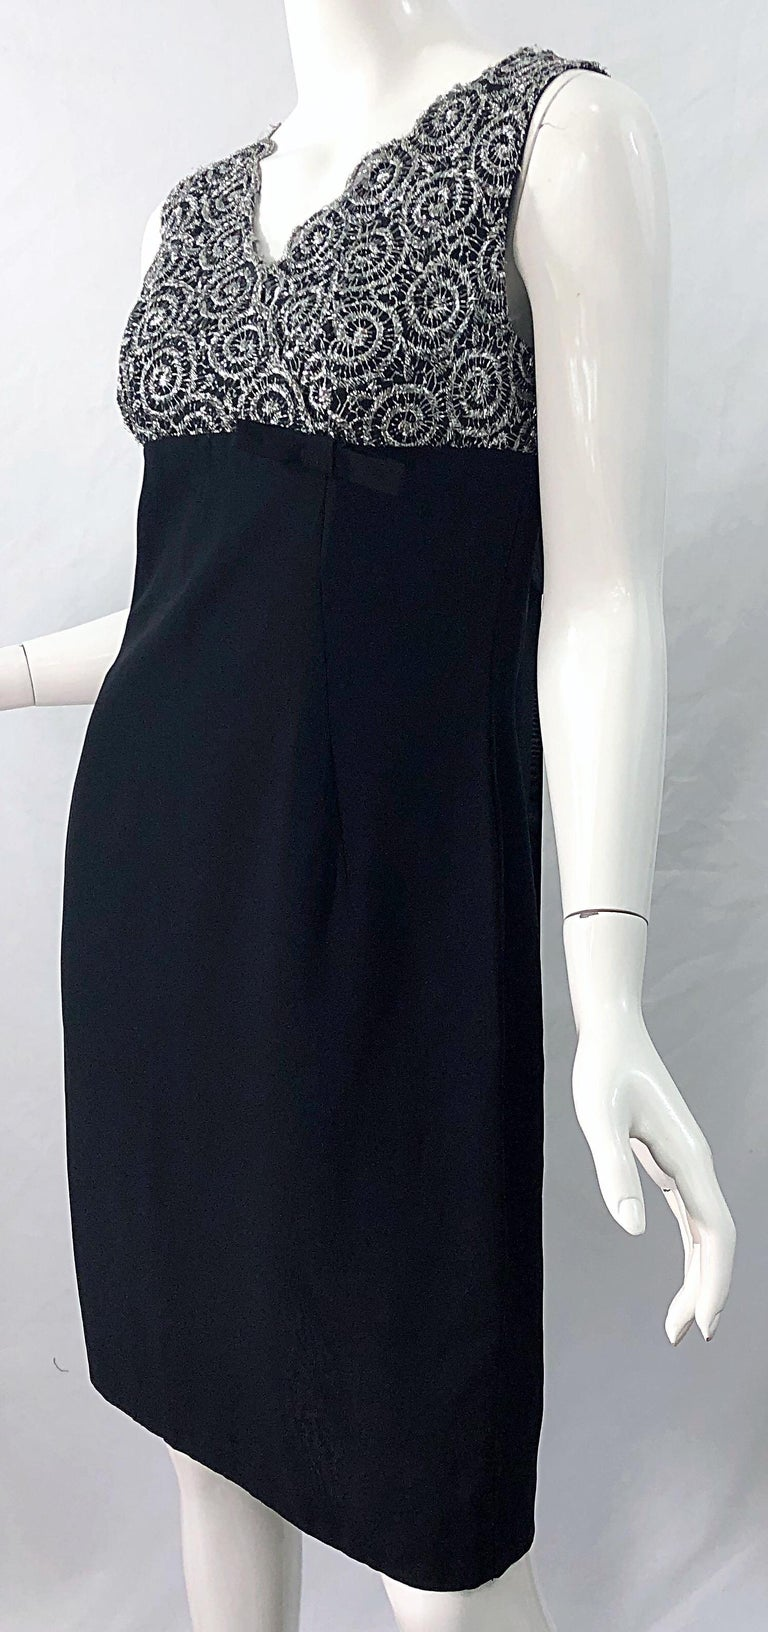 Chic 1960s Black and Silver Metallic Lace Rayon Crepe Vintage 60s Sheath Dress For Sale 7